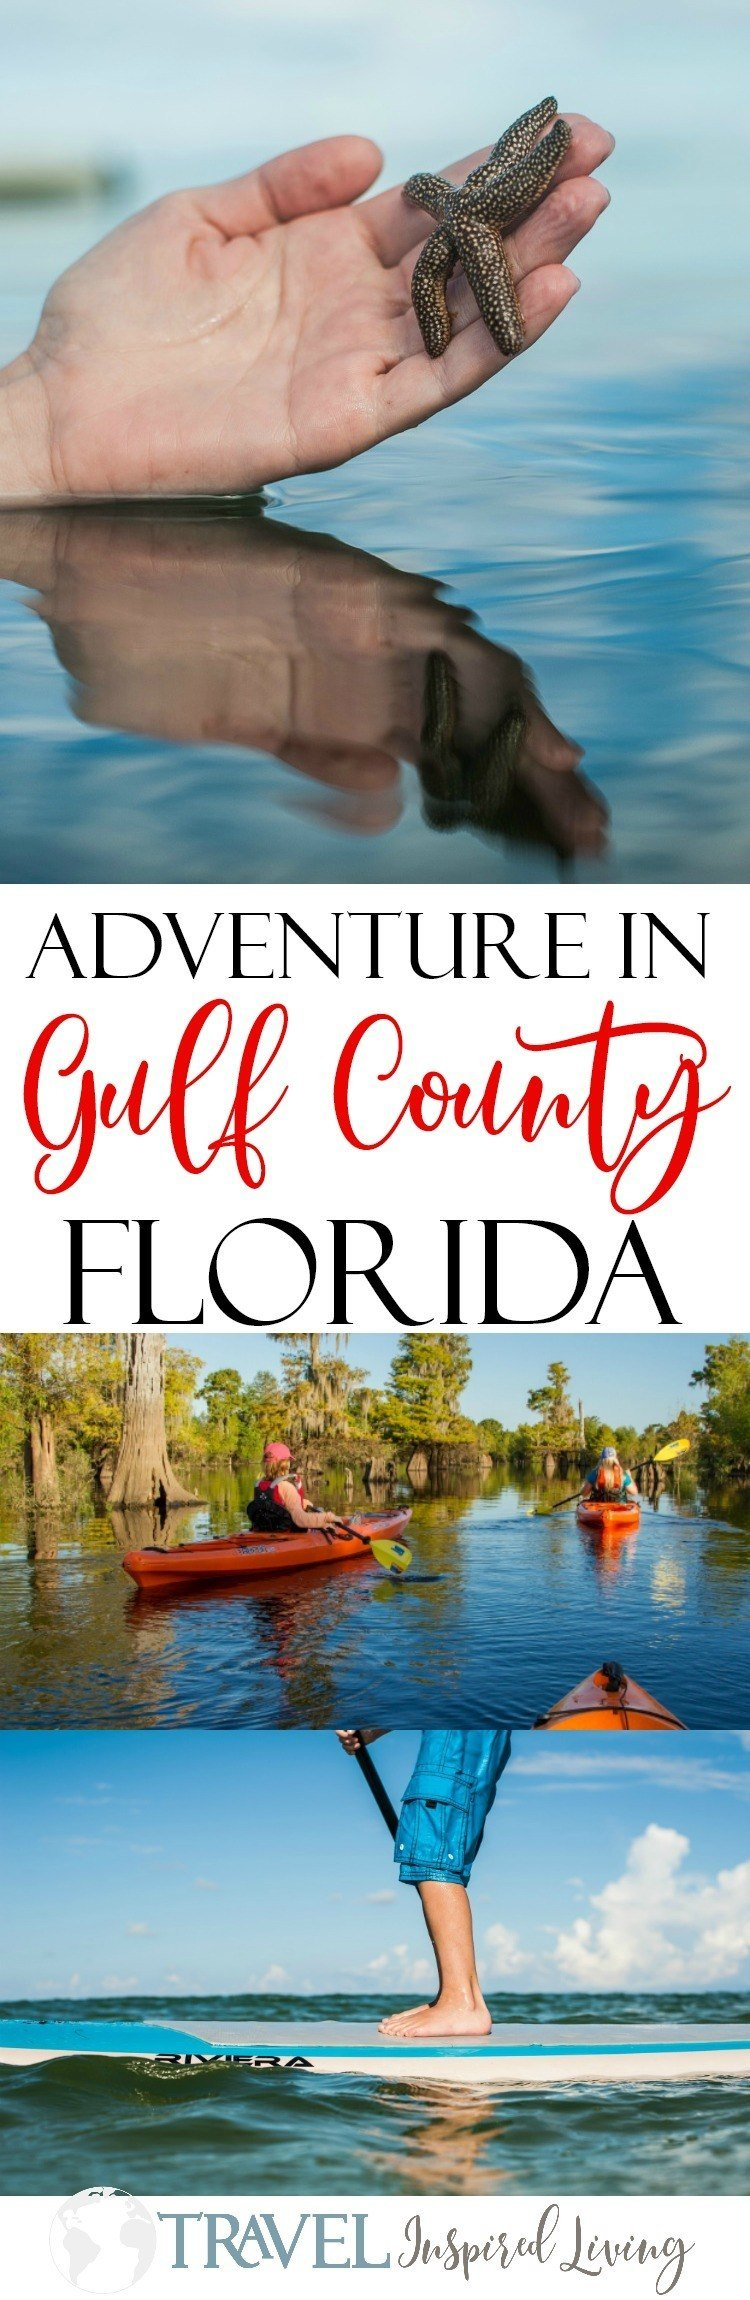 7 Easy Tips to Help you Find Adventure in Gulf County, Florida that include an opportunity for you to win a 7-day vacation. #InGulf #ad